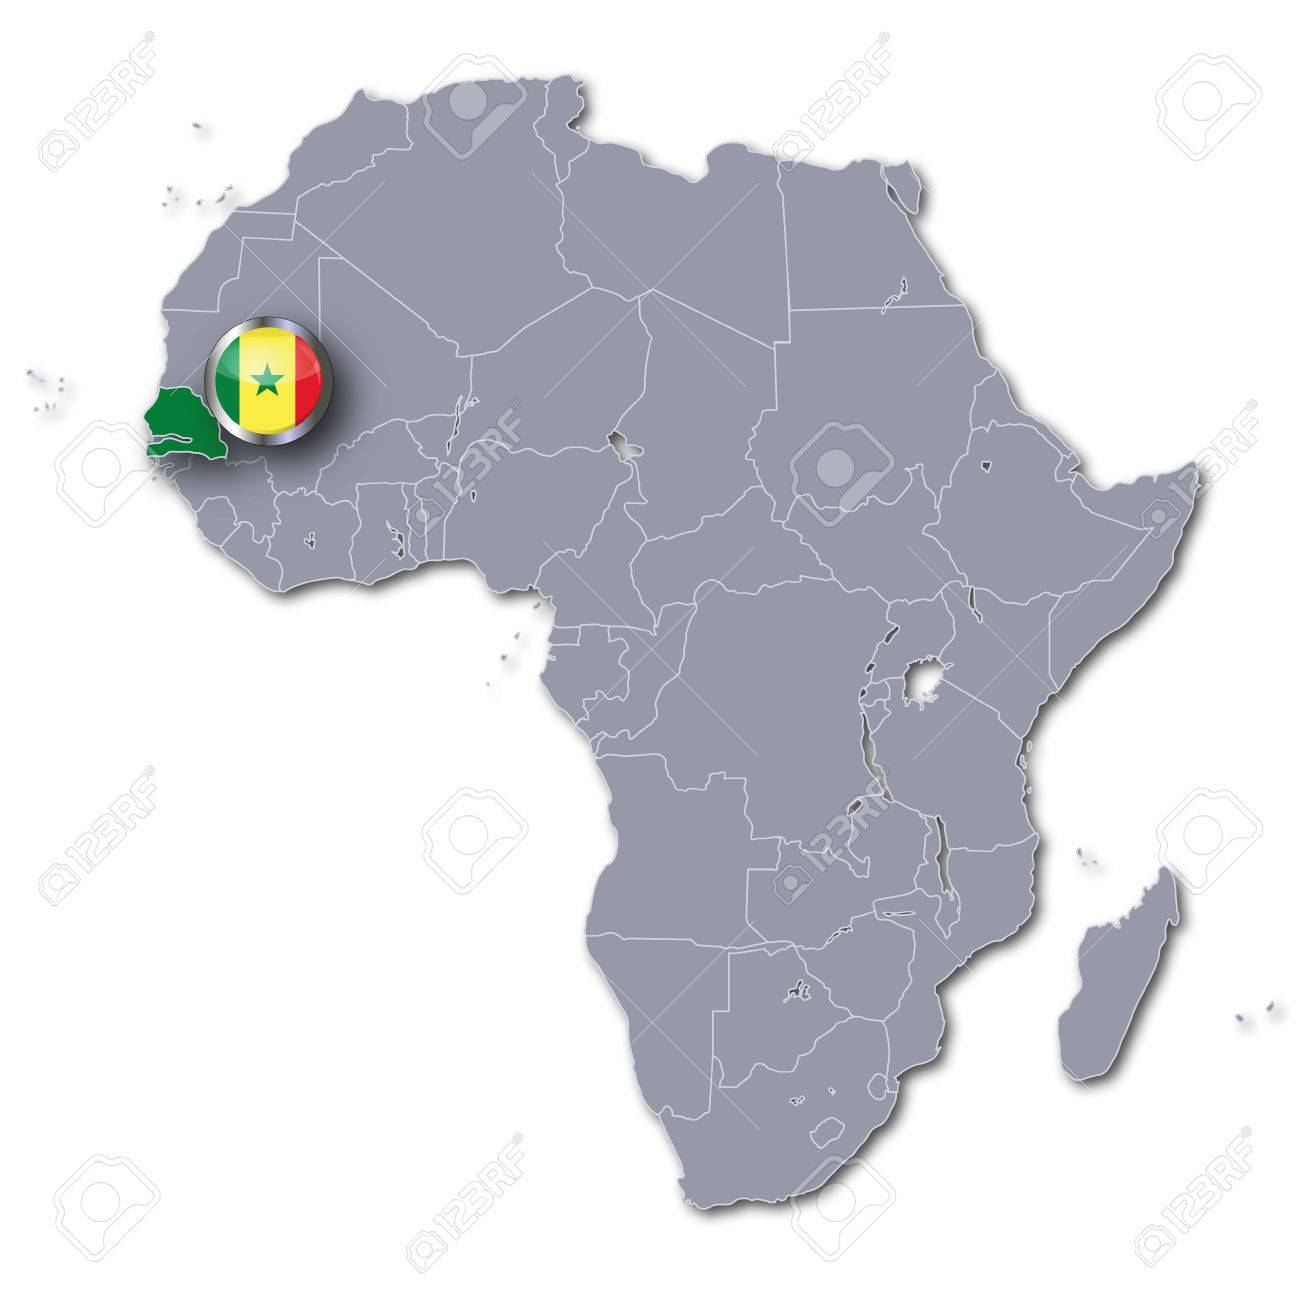 Africa Map With Senegal Stock Photo Picture And Royalty Free Image